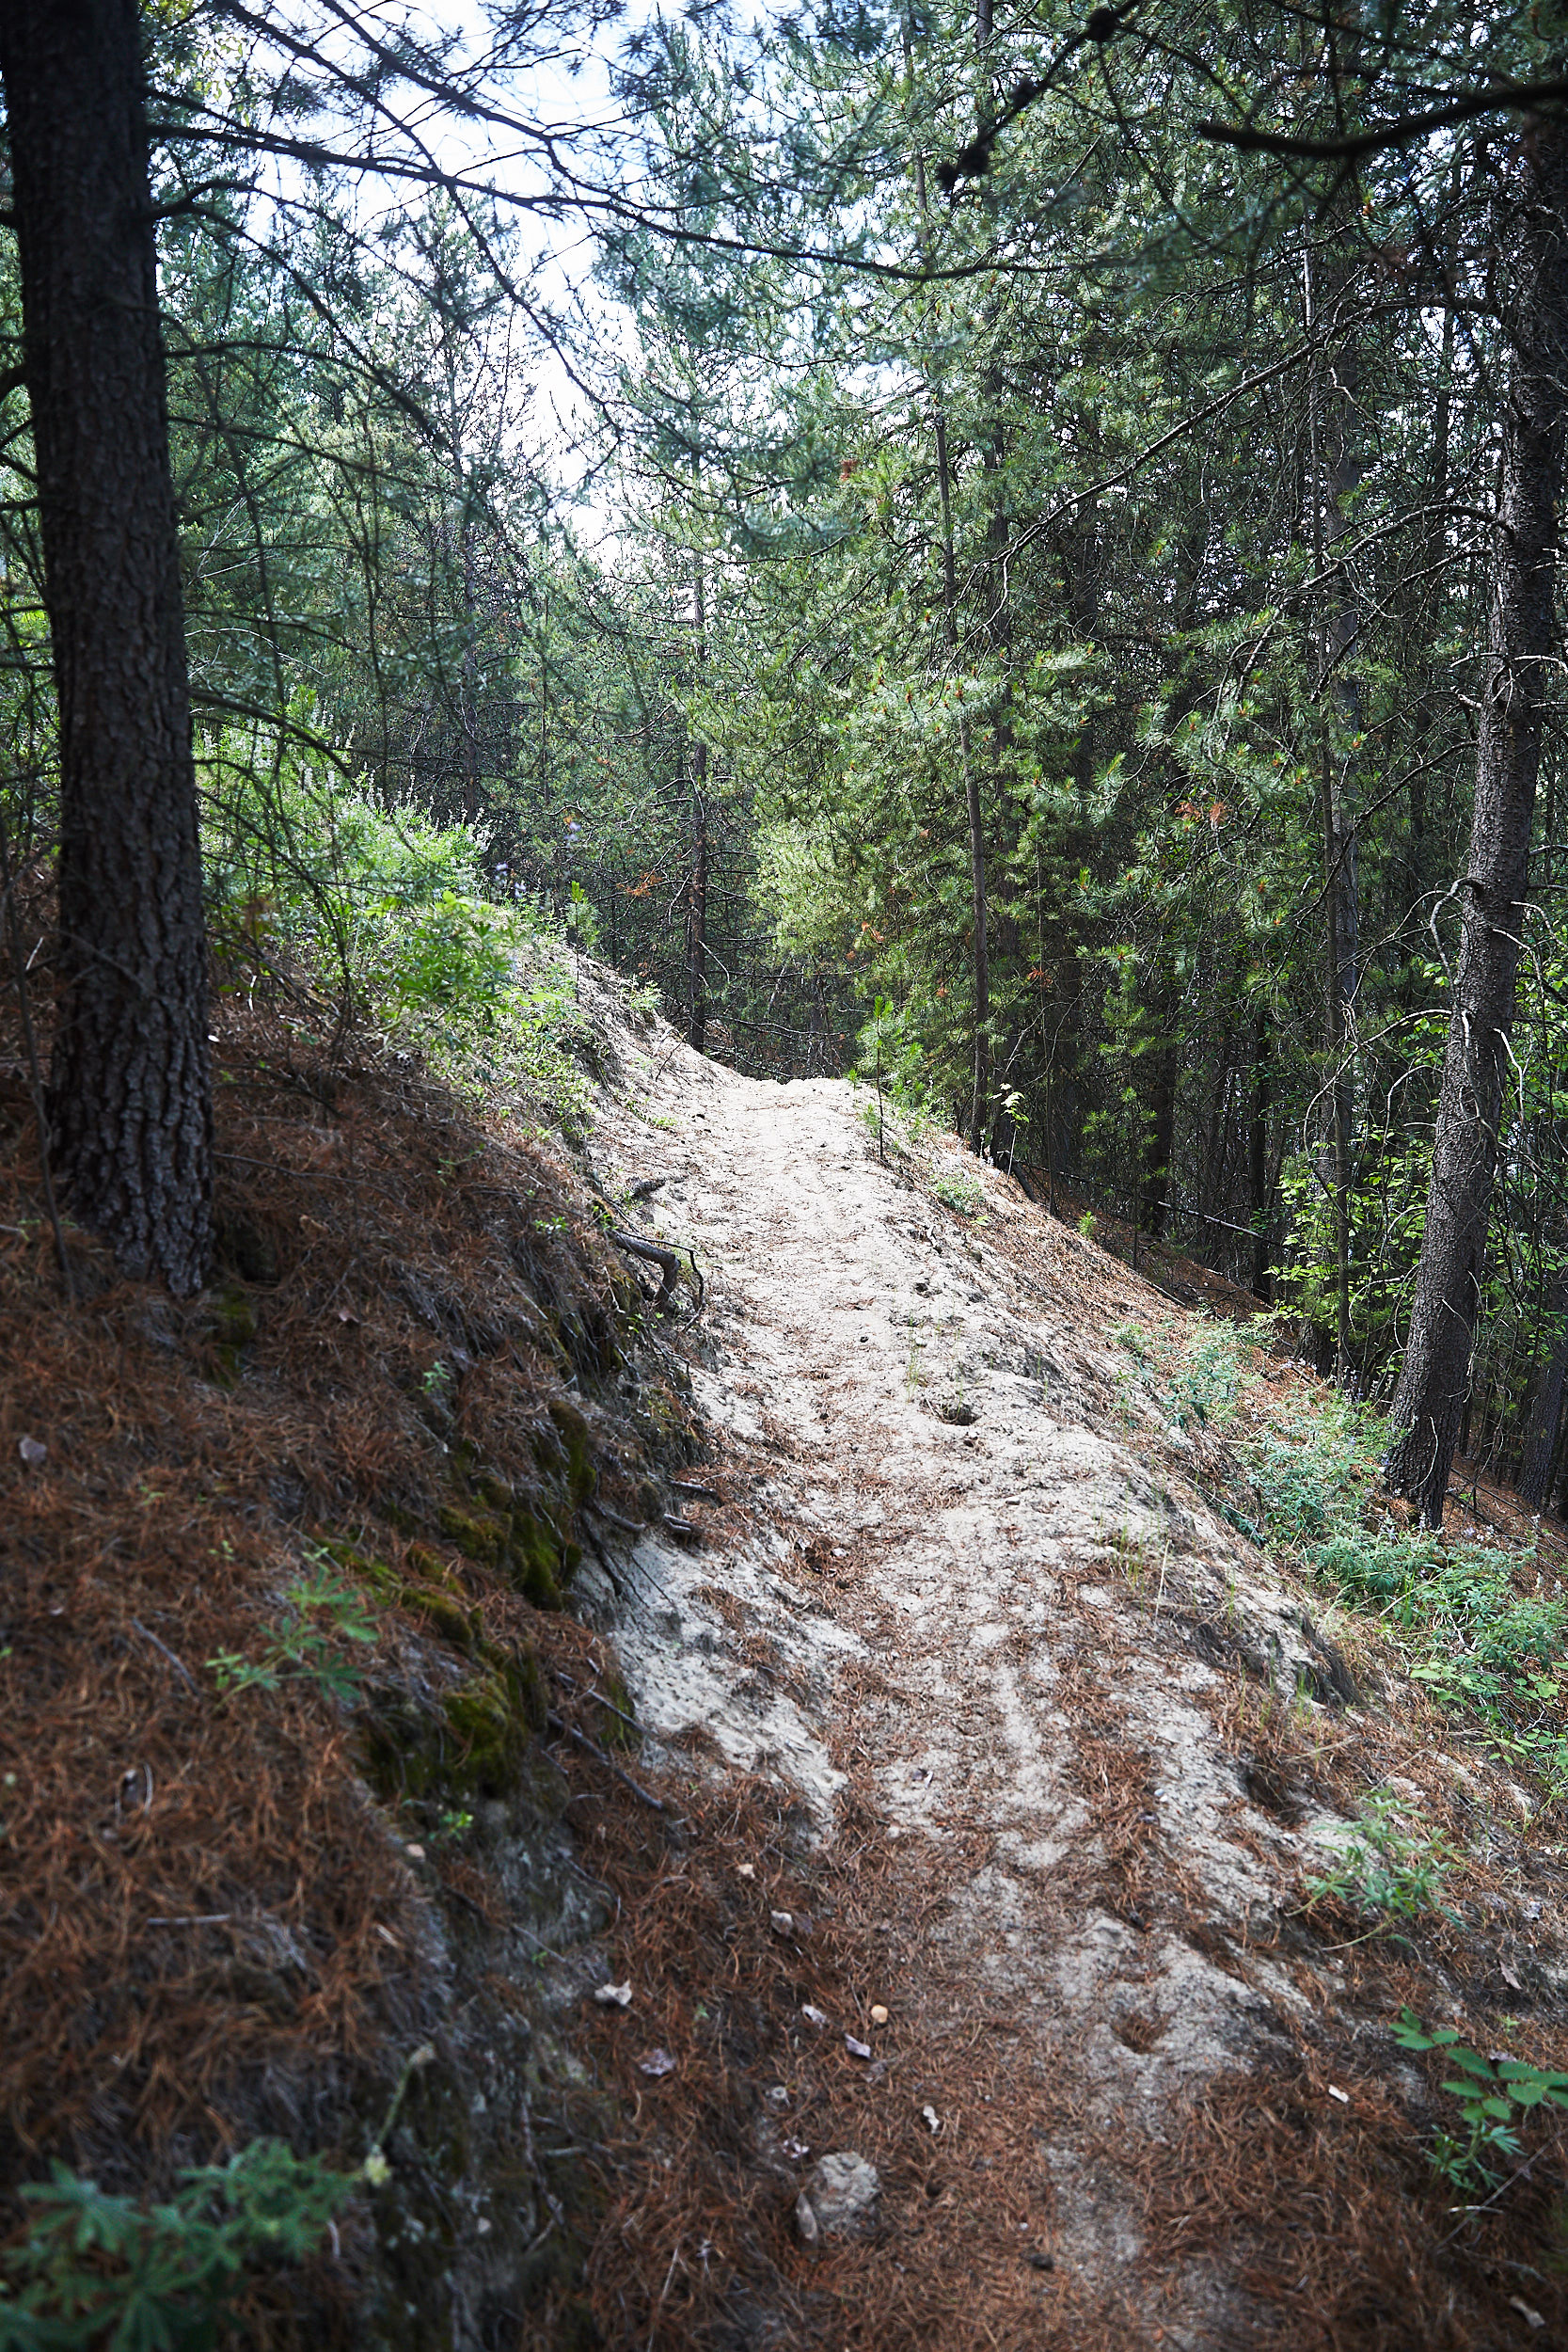 The trail between the town of 'Trail' and 'Castlegar' turned out to be one of the most difficult of the trip. Very narrow single track, bugs, ticks, sand, extremely hot and much longer than expected.